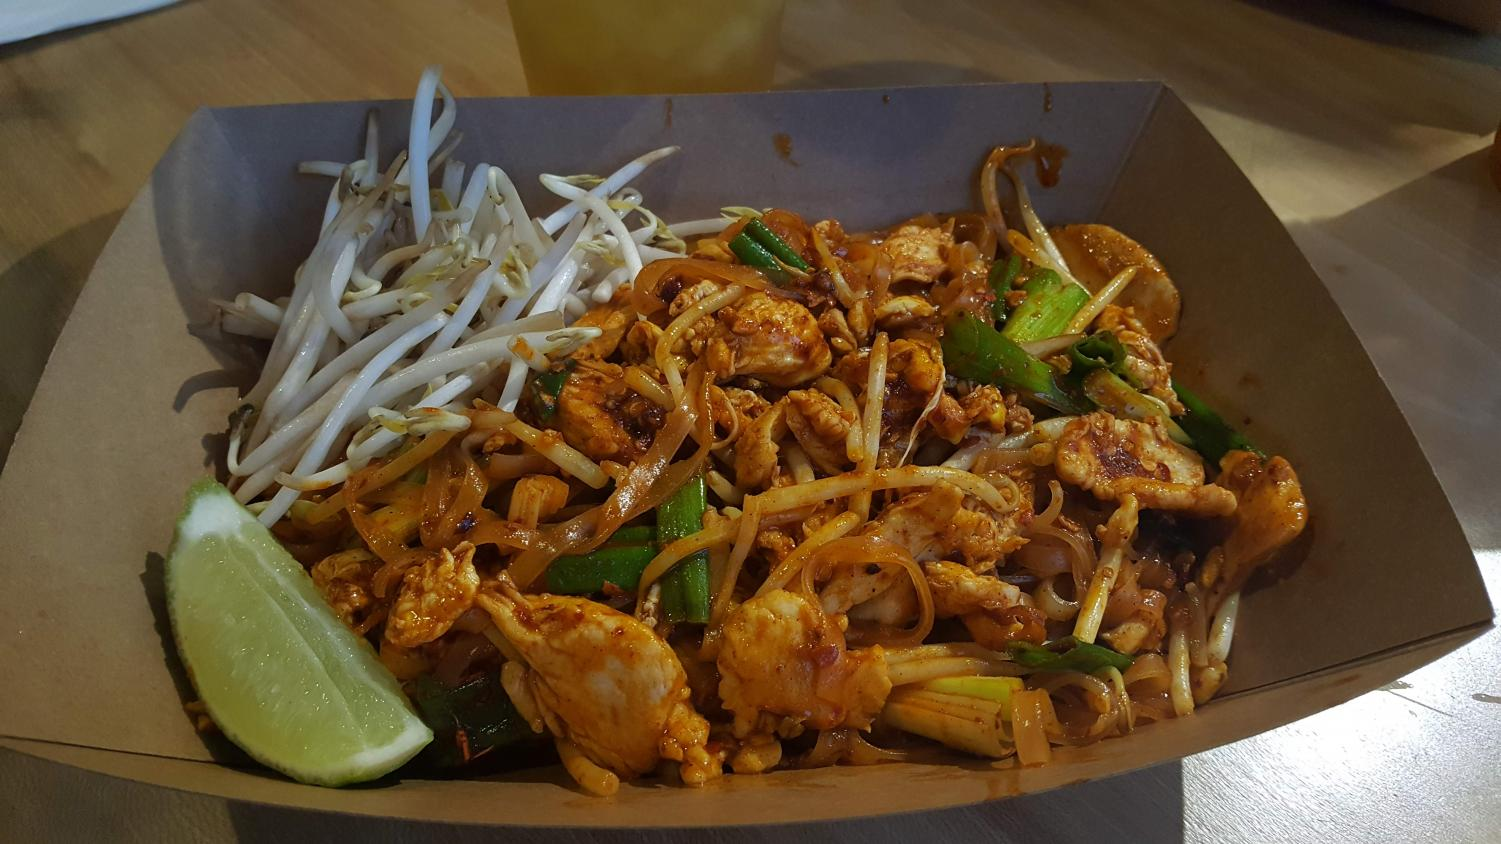 Pad Thai noodles with chicken.